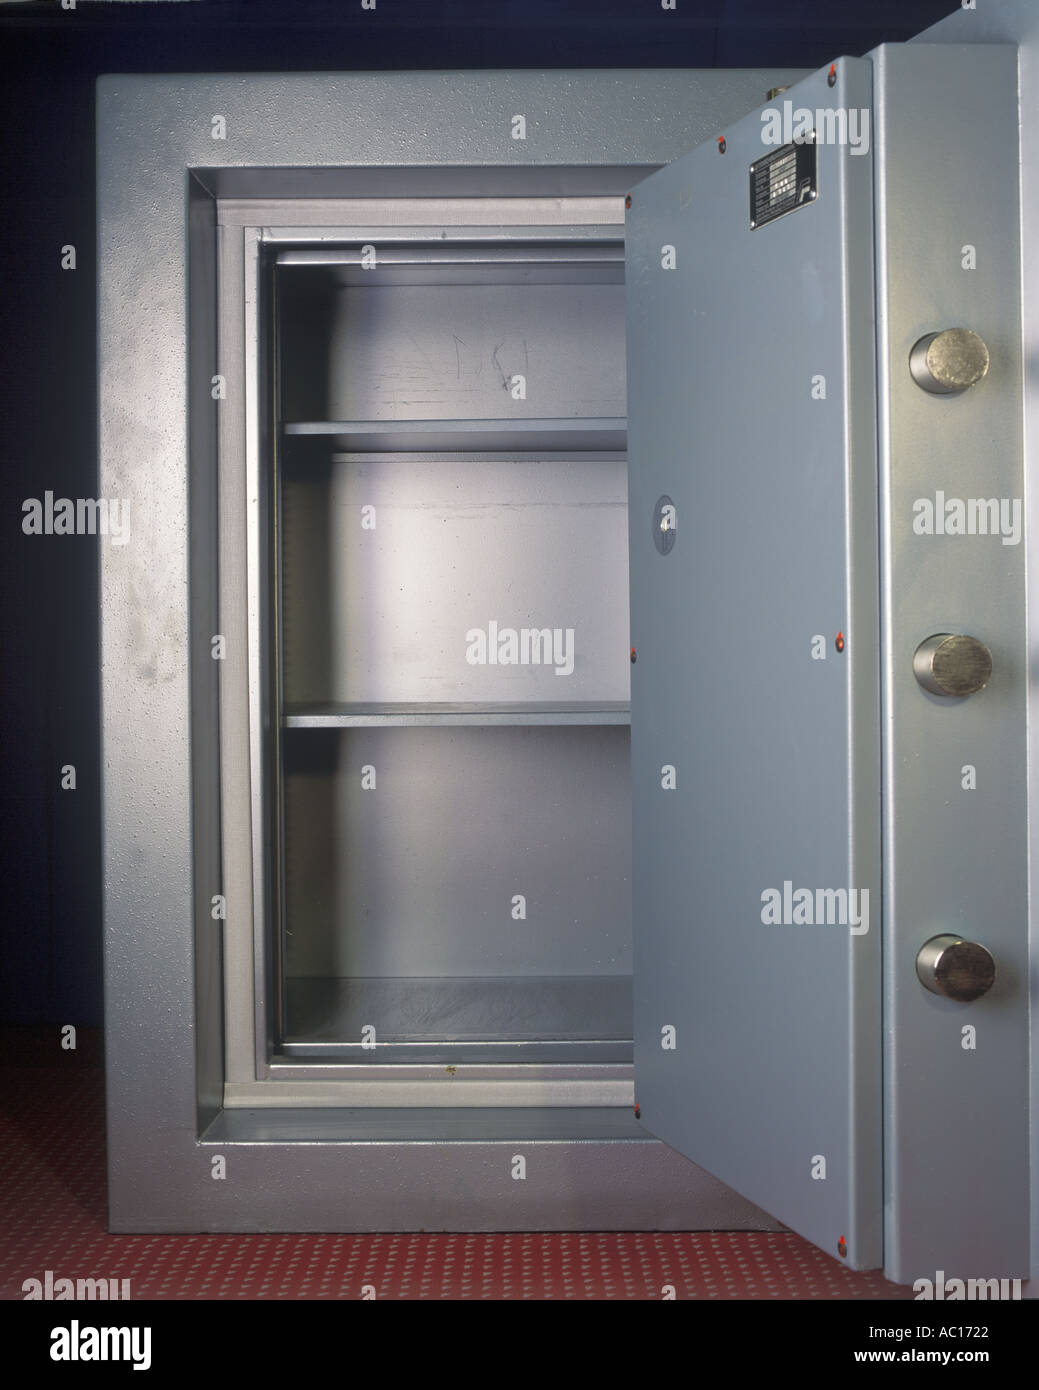 Bank Robbery Stock Photos Amp Bank Robbery Stock Images Alamy